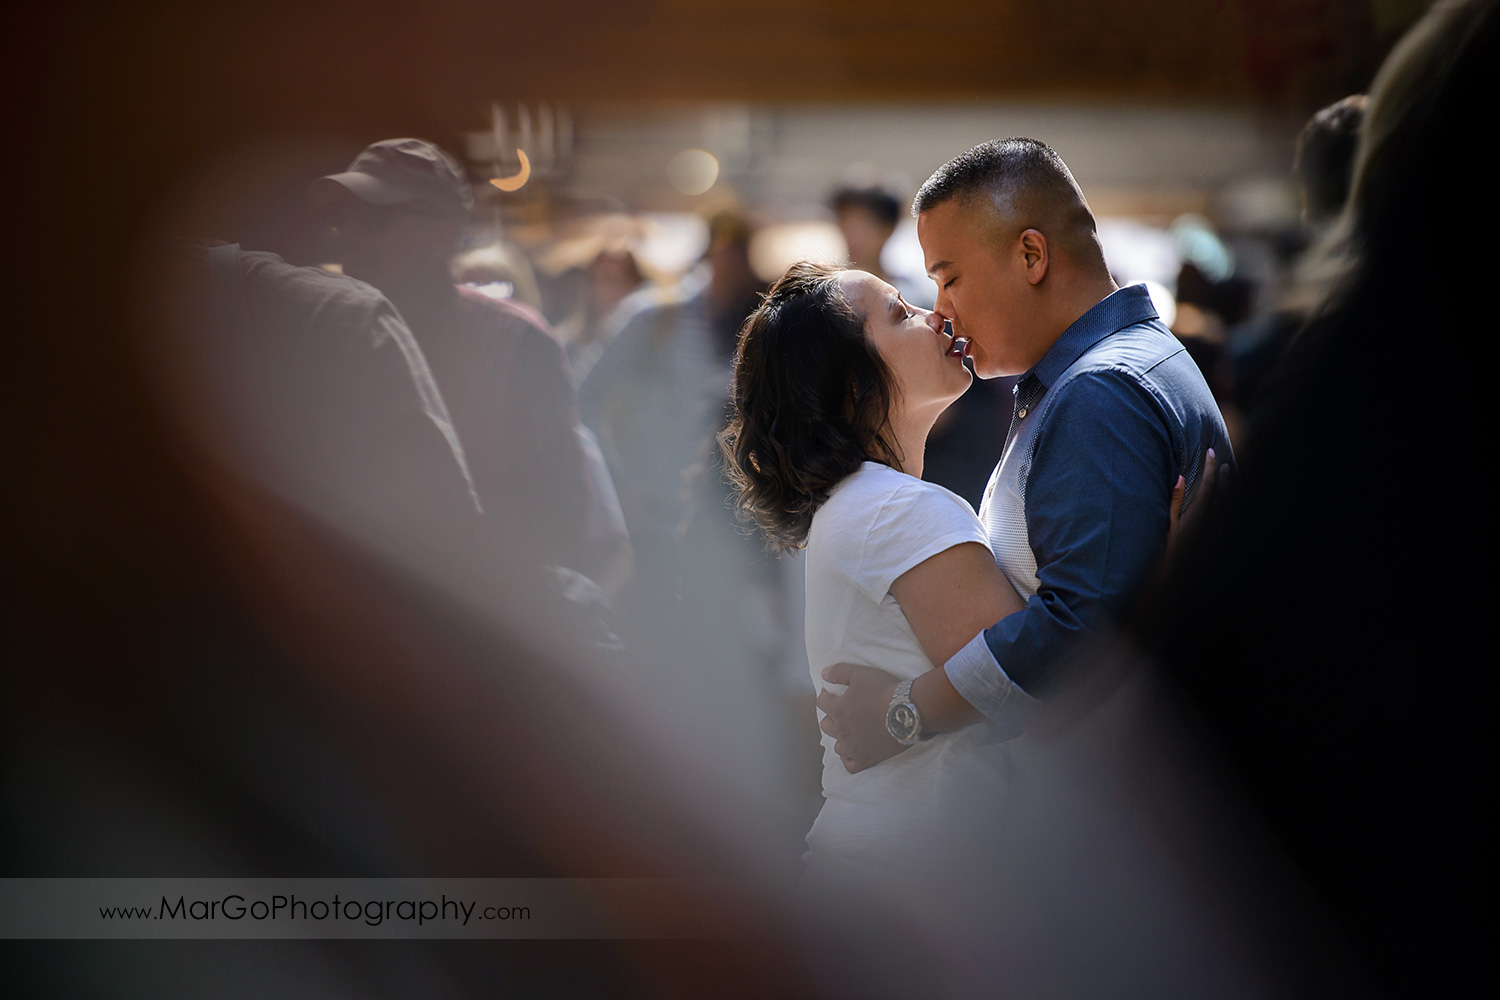 engagement session at Ferry Building in San Francisco - couple kissing in the crowd